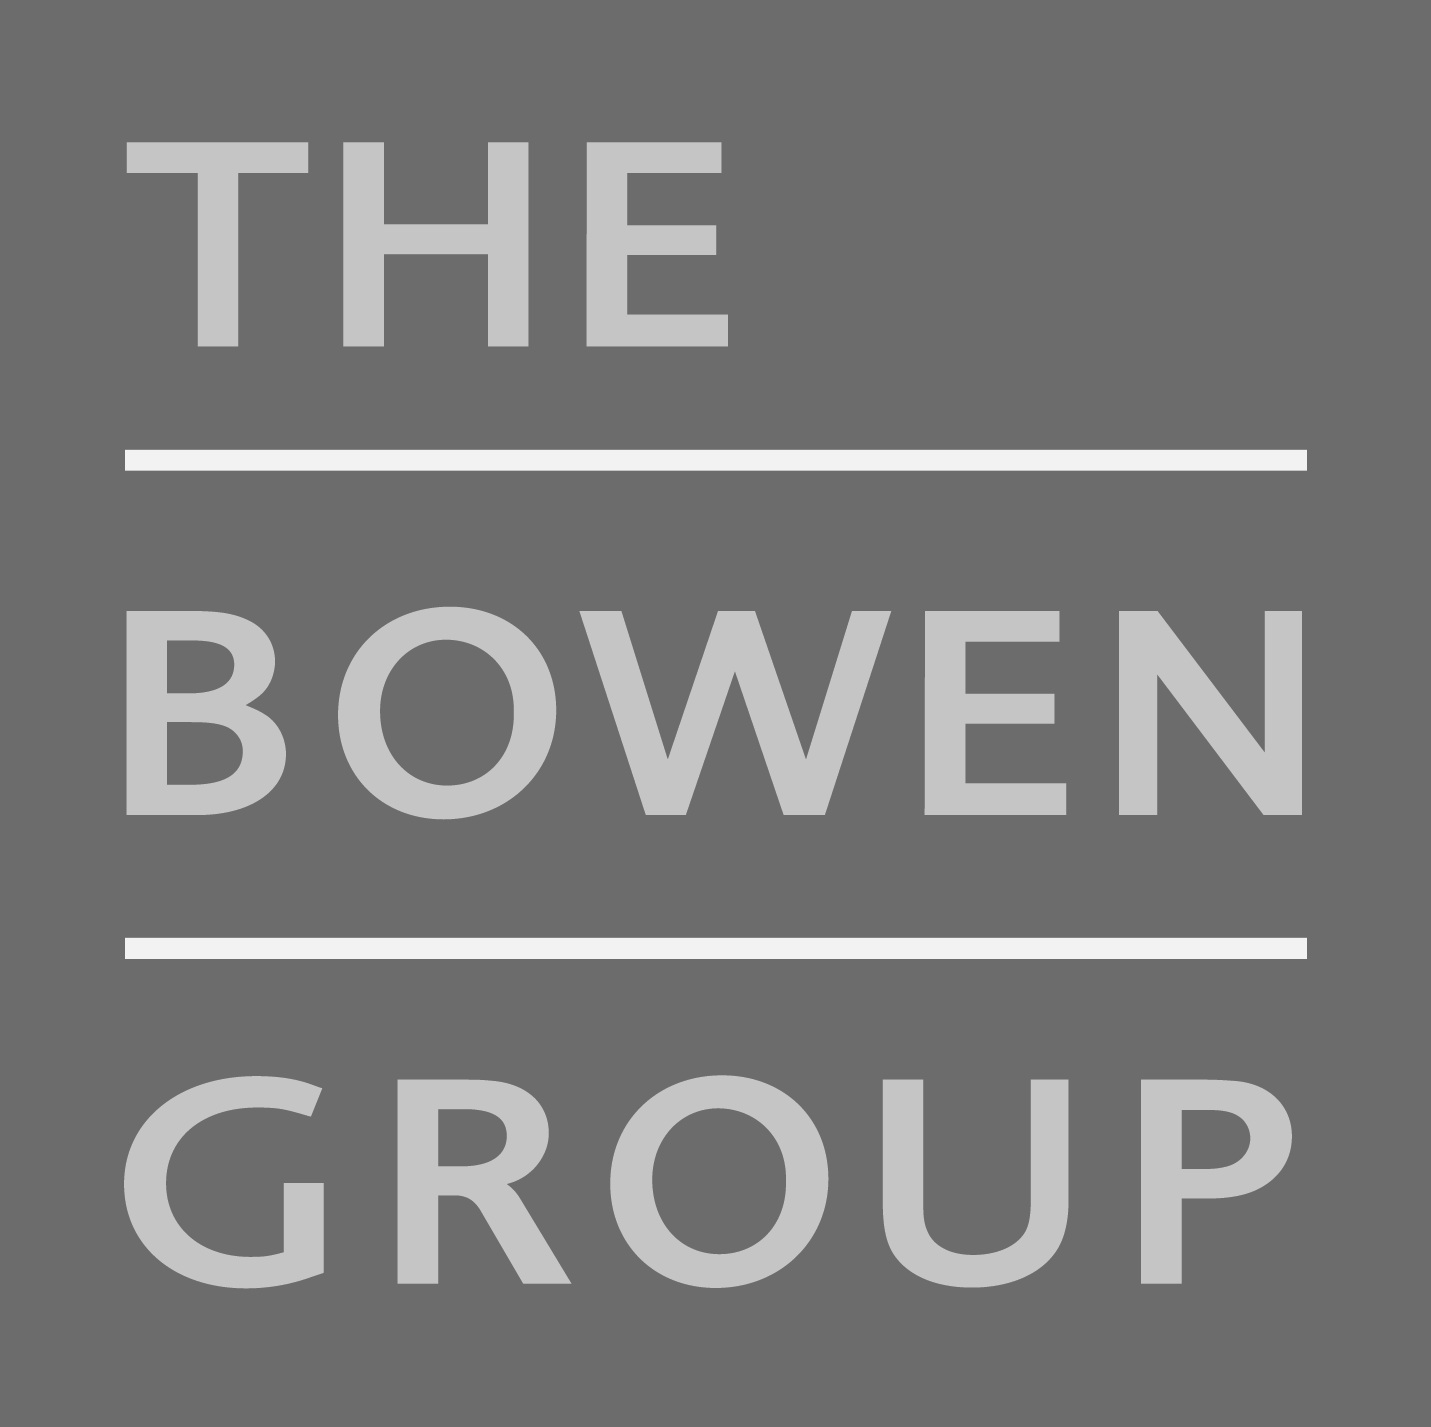 The_Bowen_Group_2color.jpg